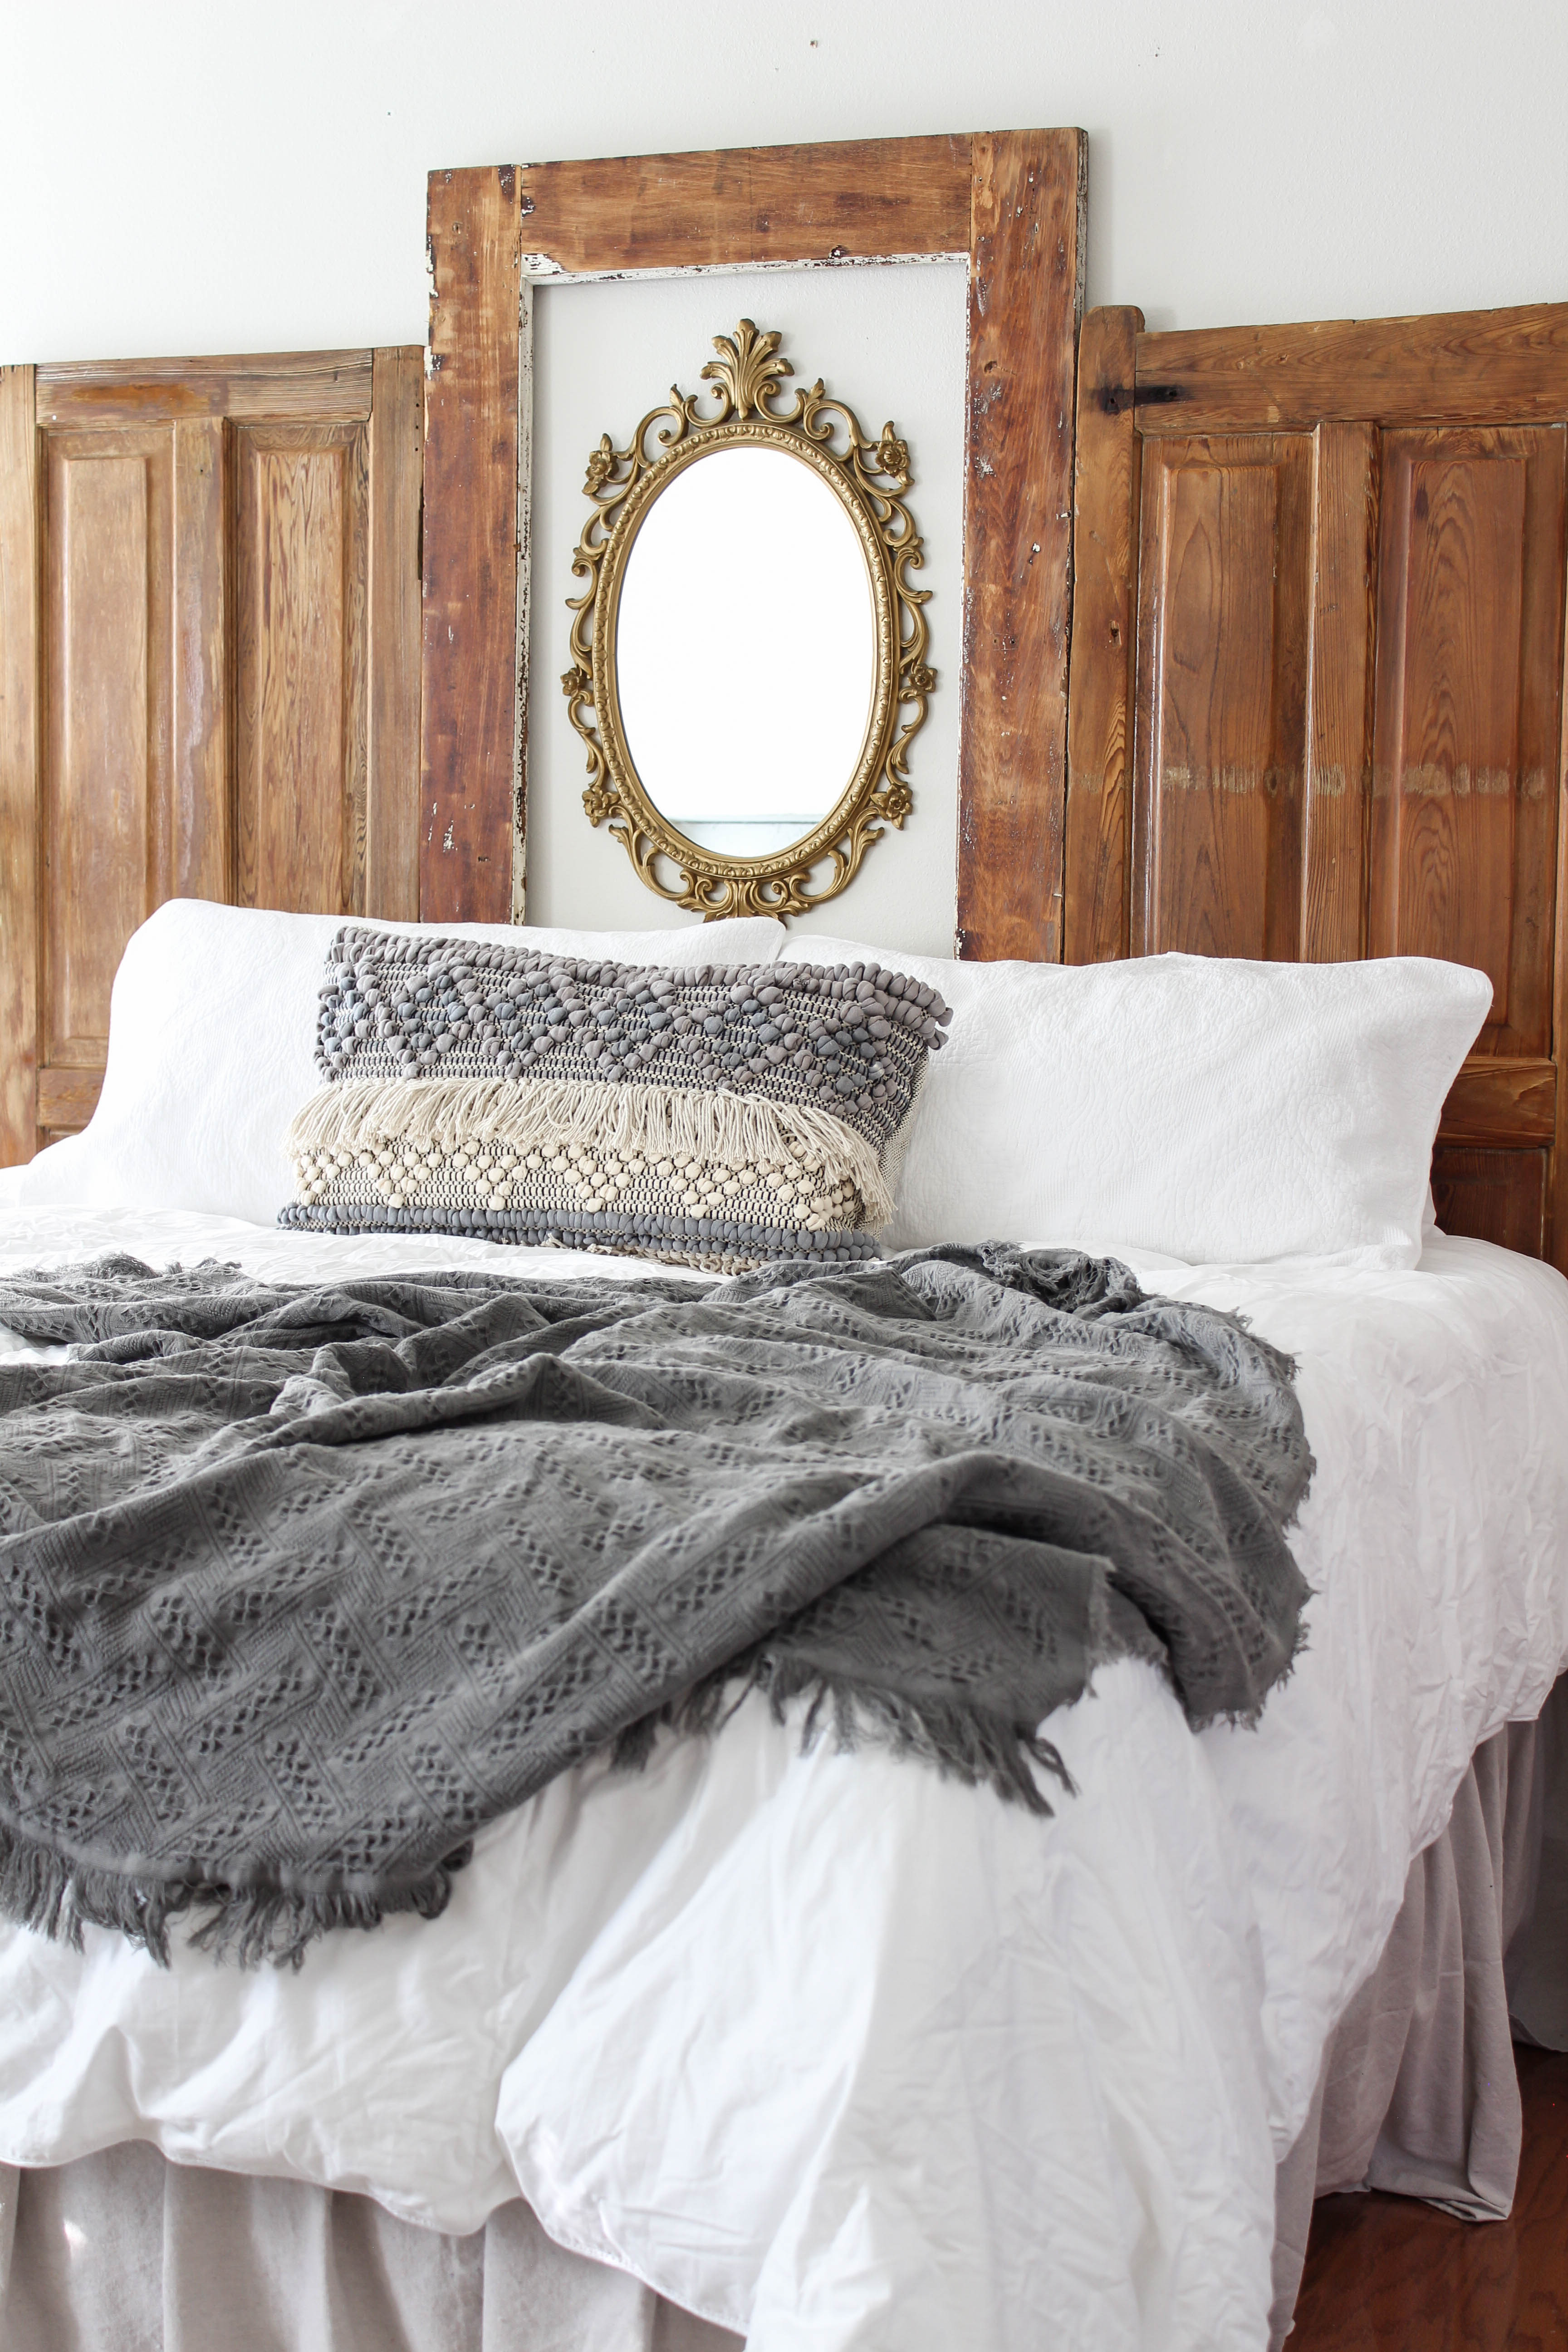 A step by step tutorial for creating a DIY headboard and bed frame using vintage doors. A budget friendly project that can transform your bedroom!